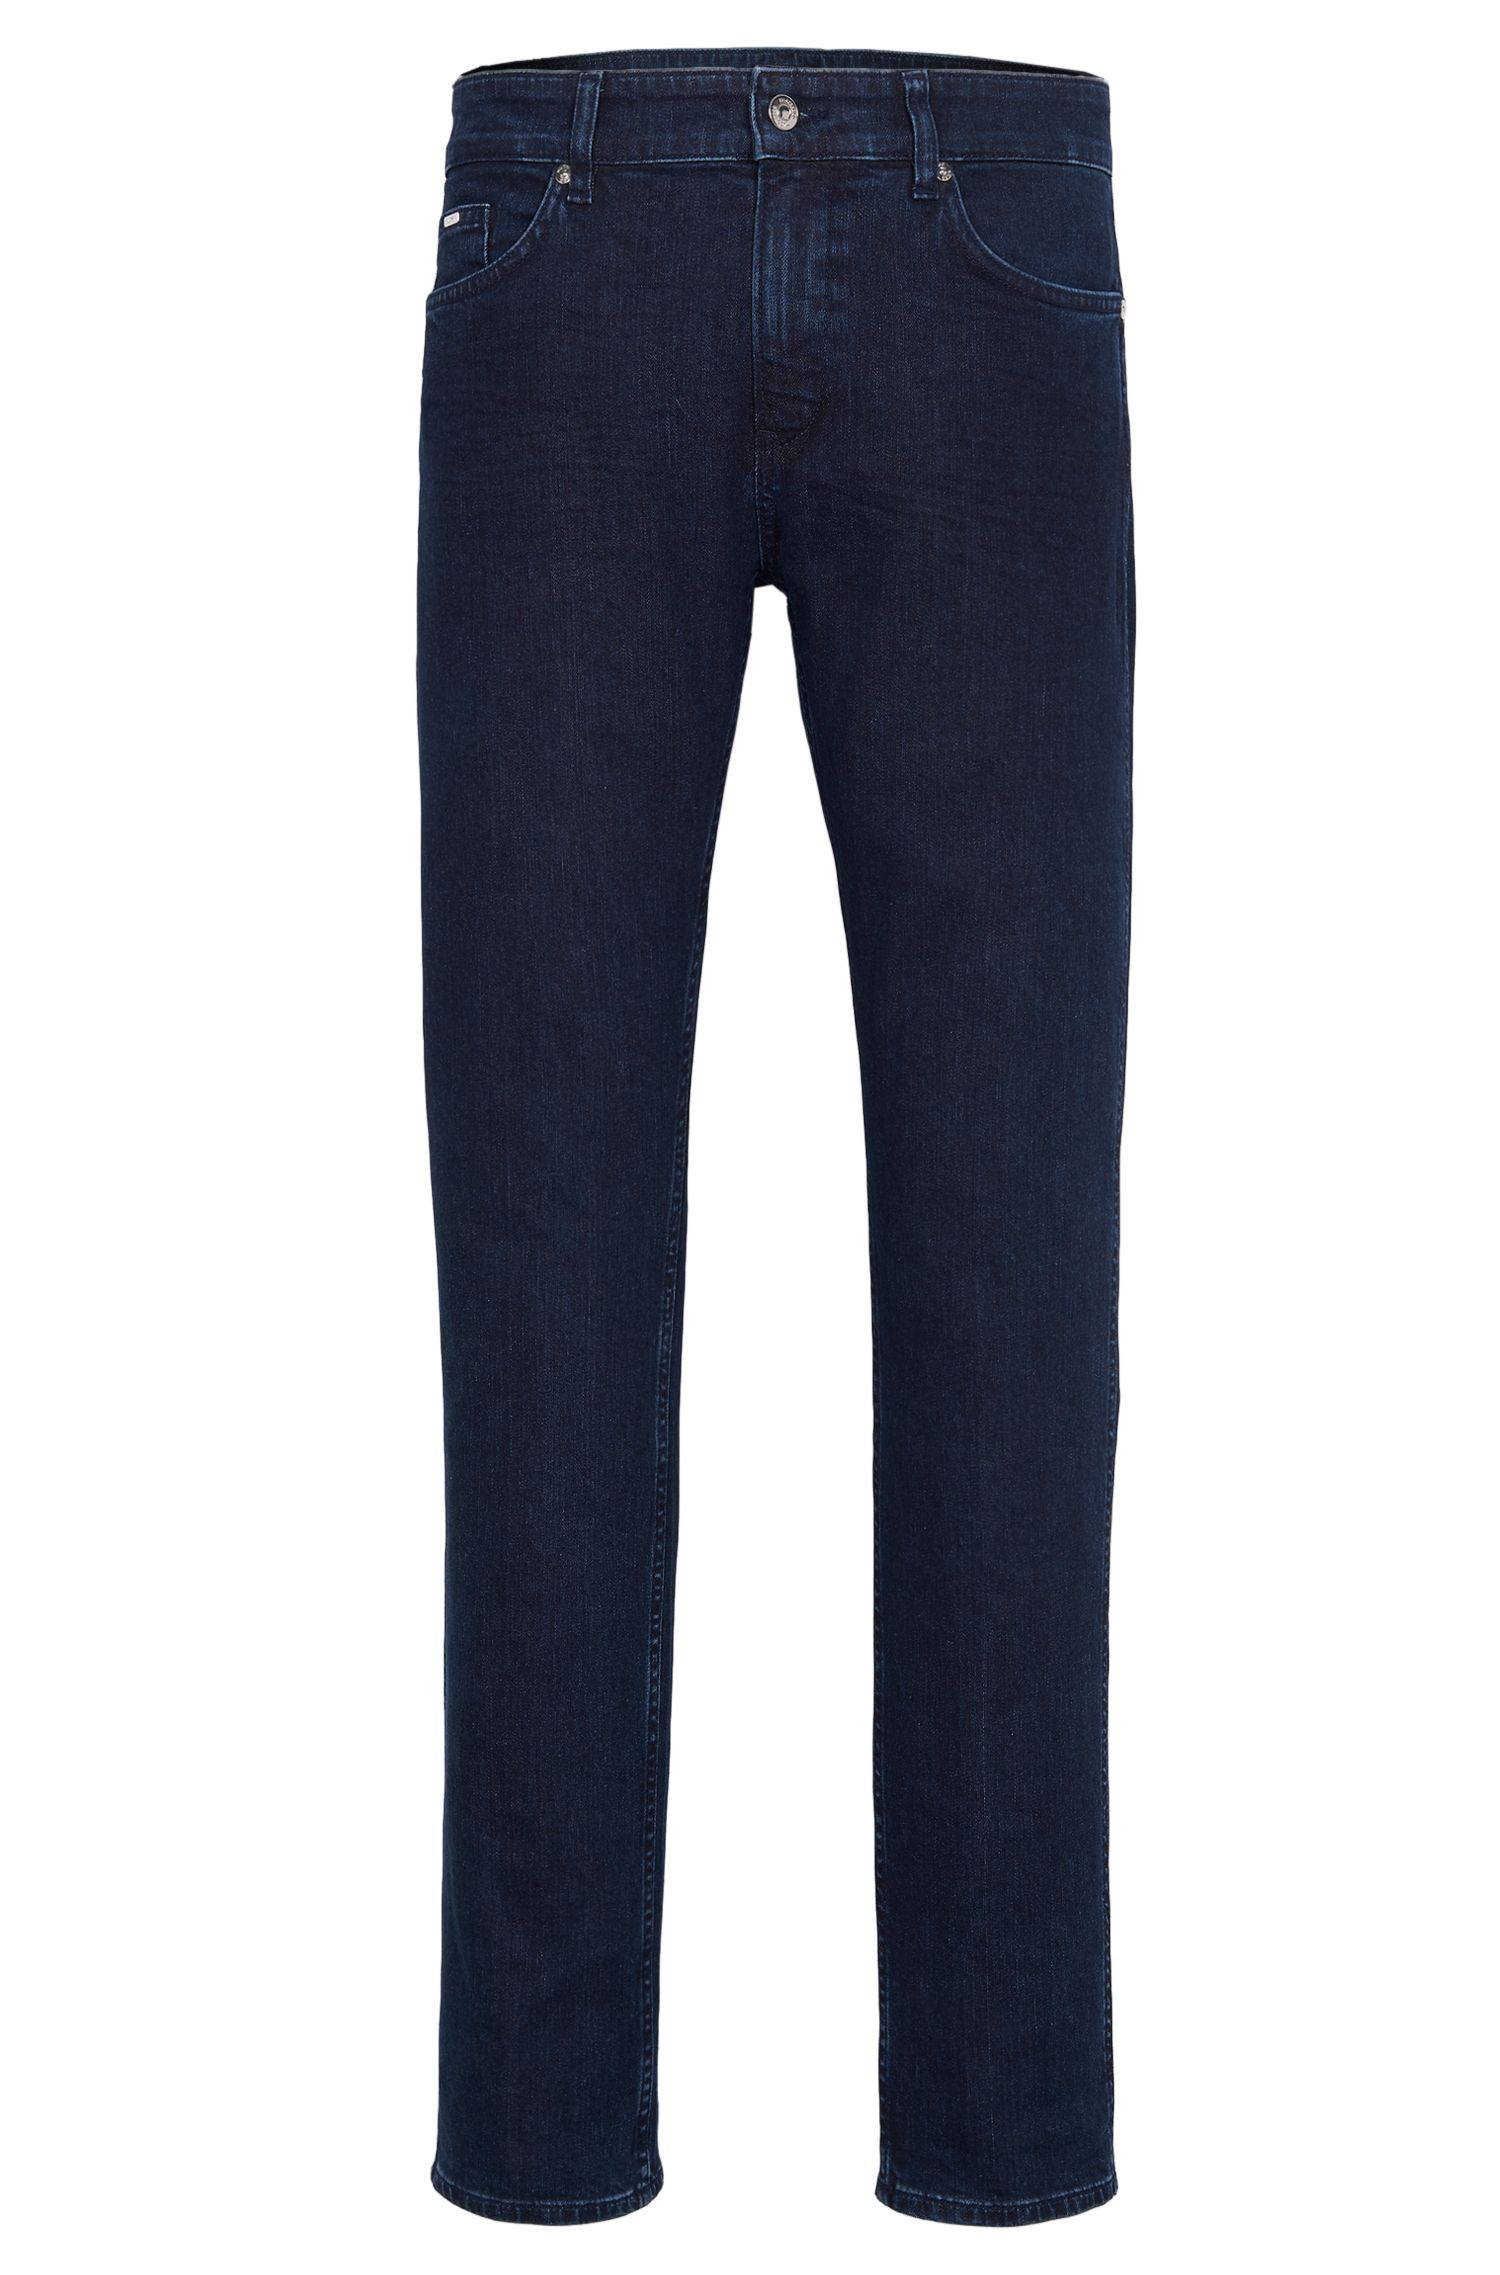 8 oz Stretch Cotton Jeans, Slim Fit | Delaware